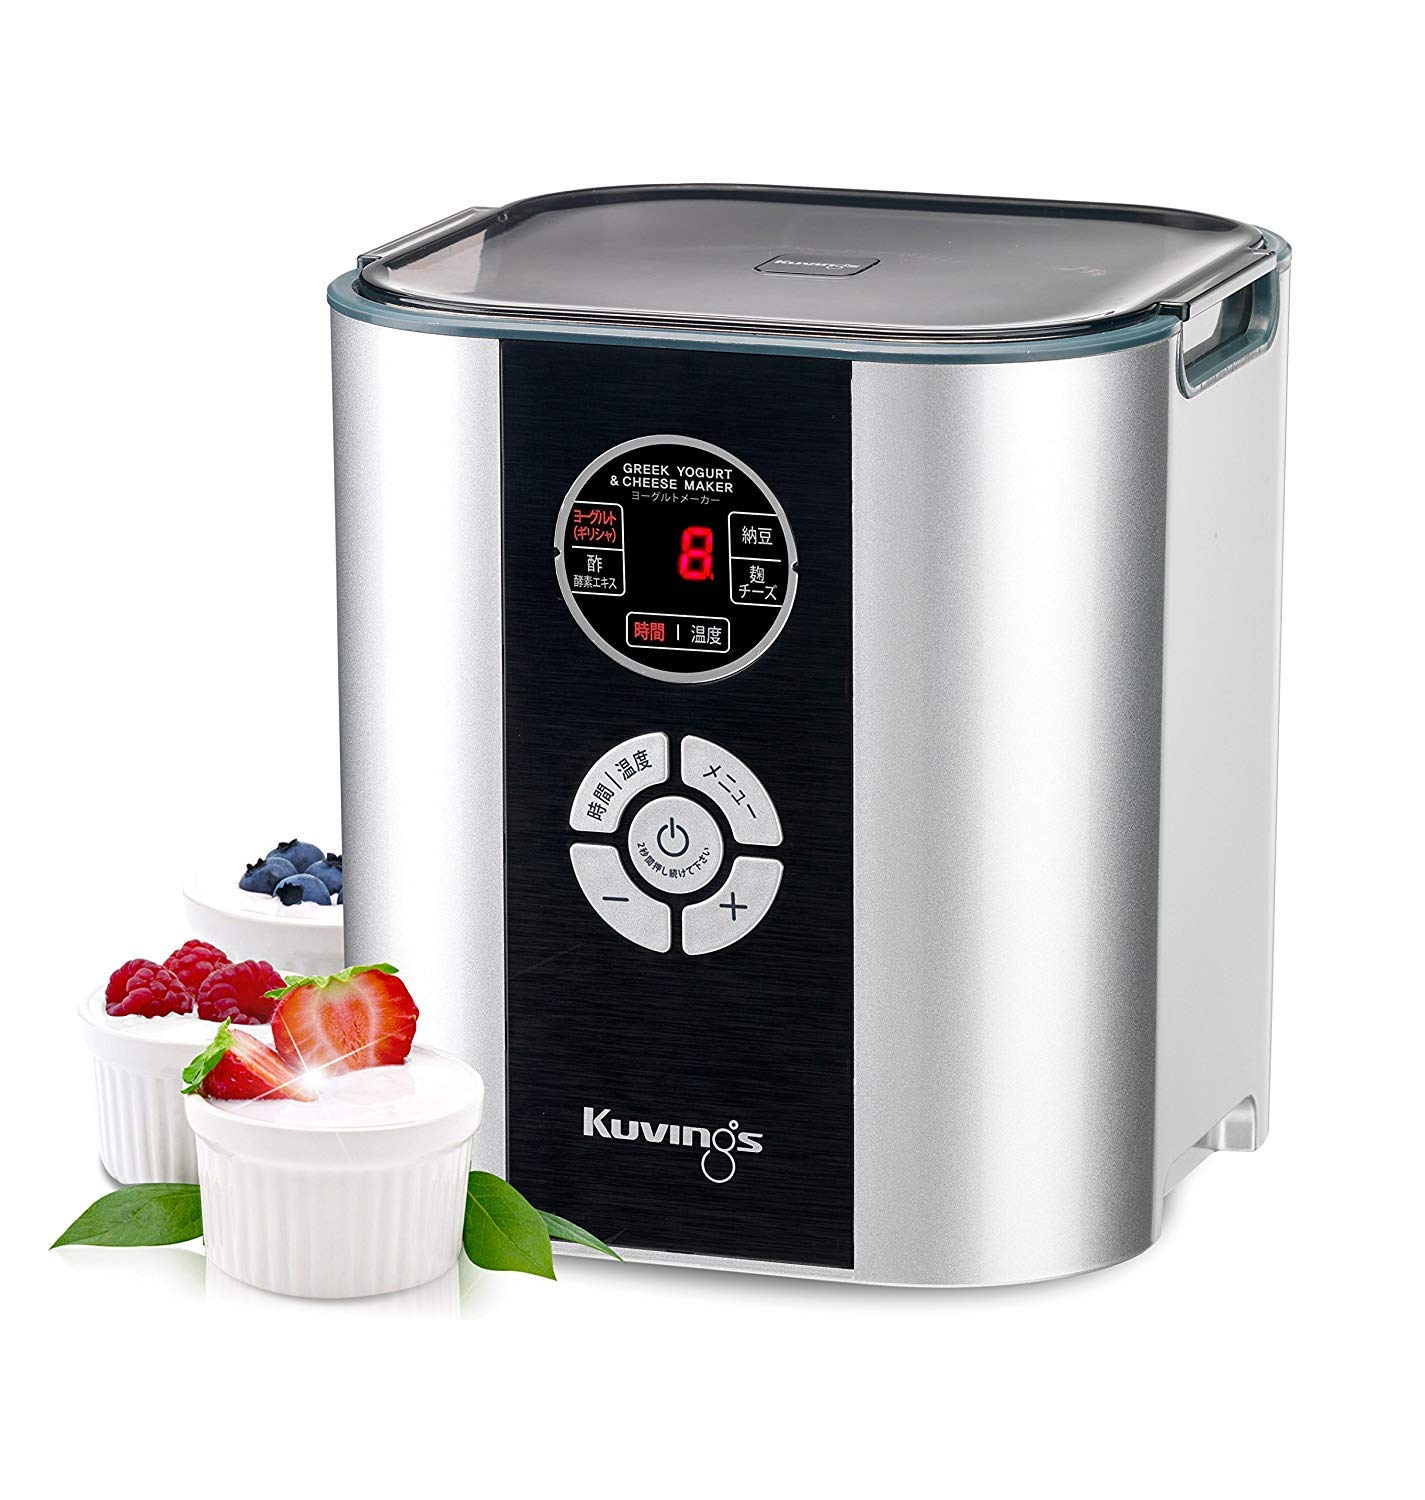 Kuvings yogurt and cheese maker KGY-713SM